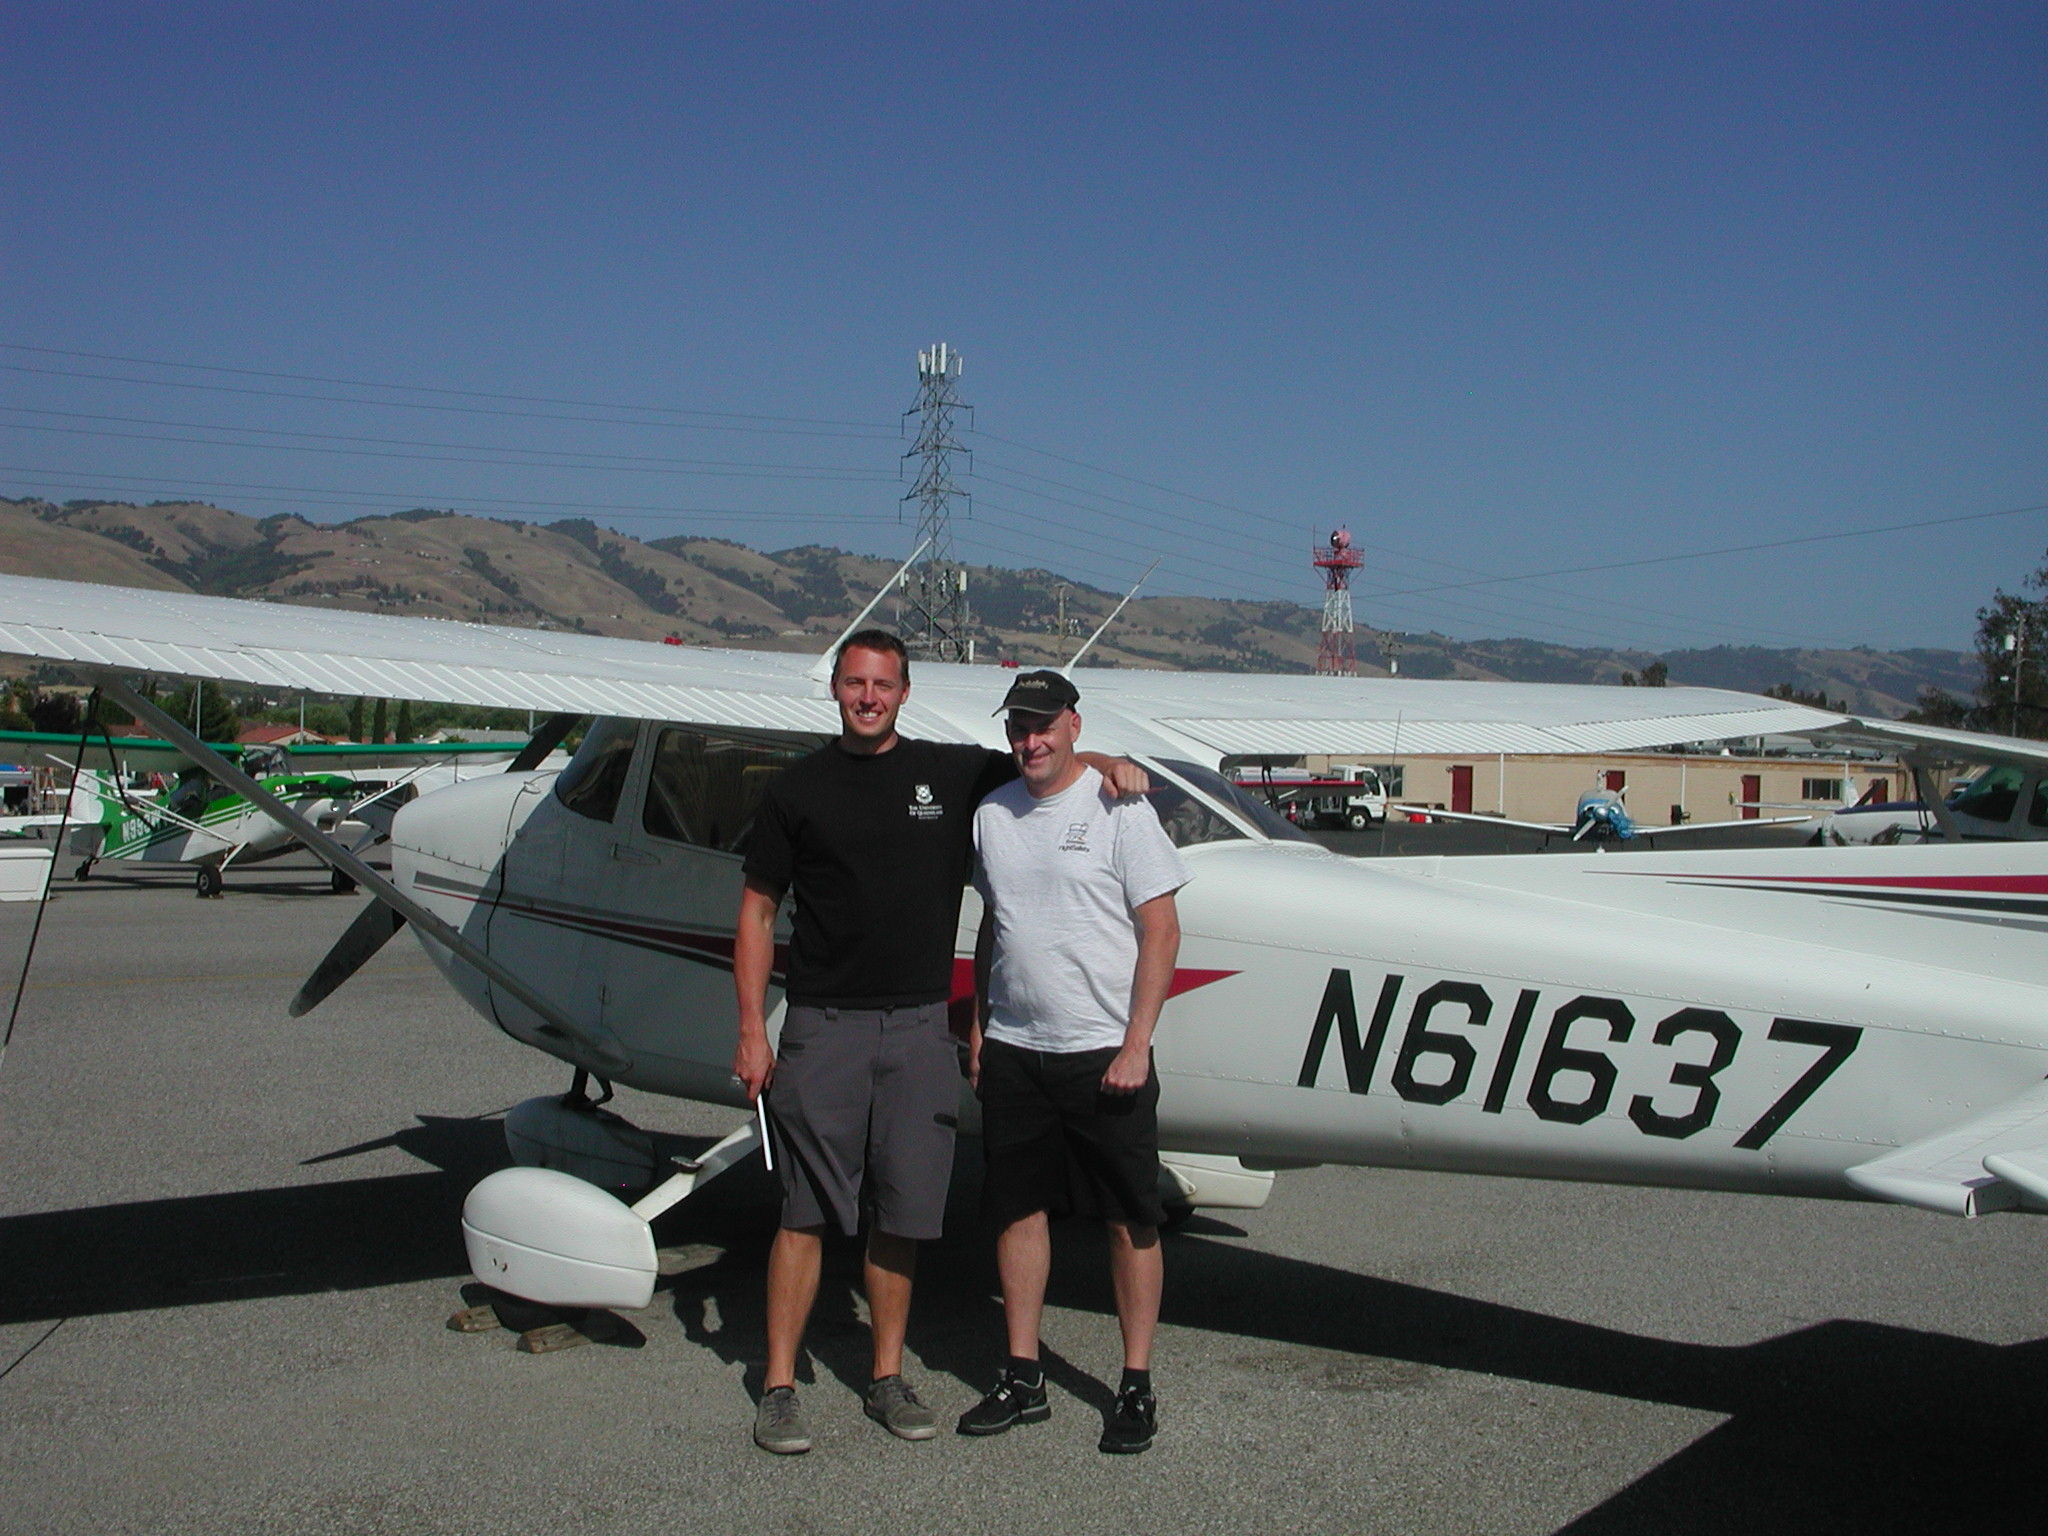 Mark Nelson passes Private Pilot checkride at AeroDynamic Aviation located at Reid Hillview Airport in San Jose, CA.